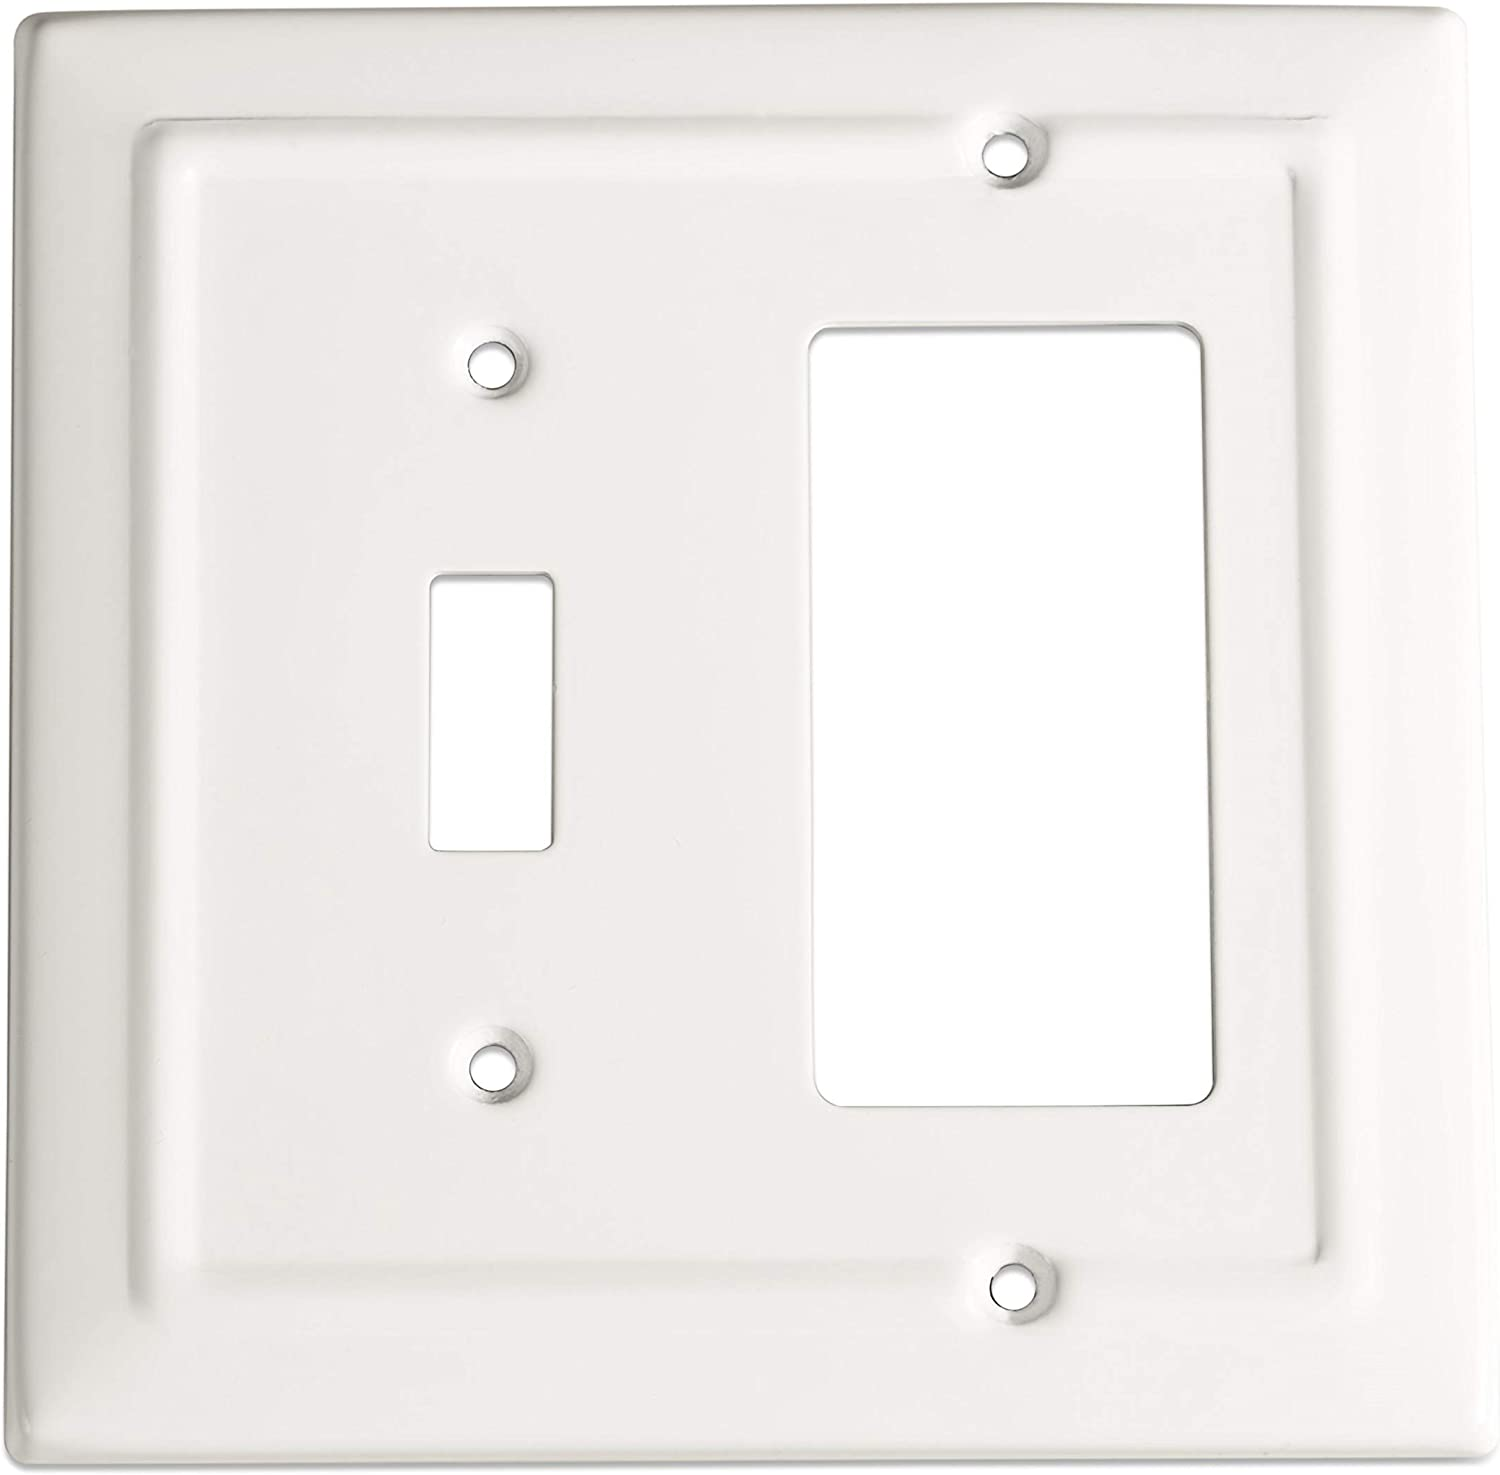 Monarch Abode 19055 Architectural Single Rocker Wall Switch Plate, Classic White